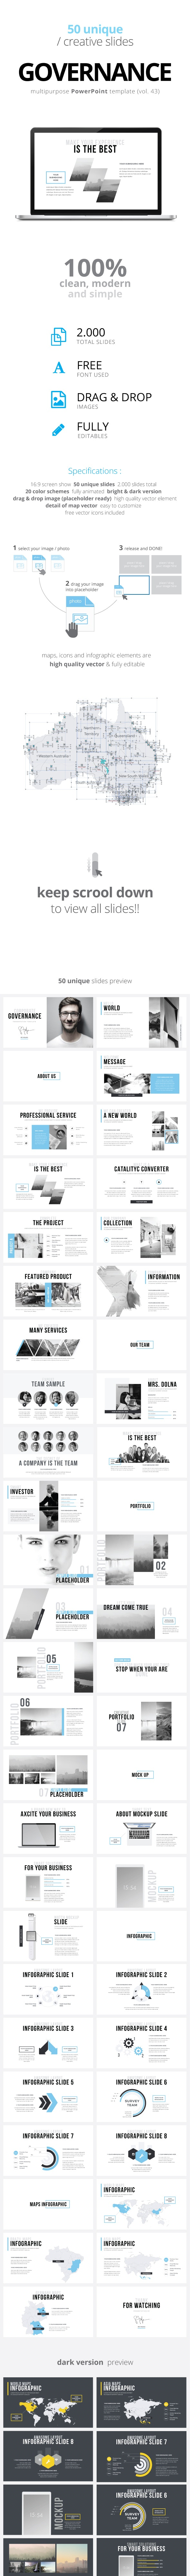 Governance Multipurpose PowerPoint Template (V.43) - Business PowerPoint Templates